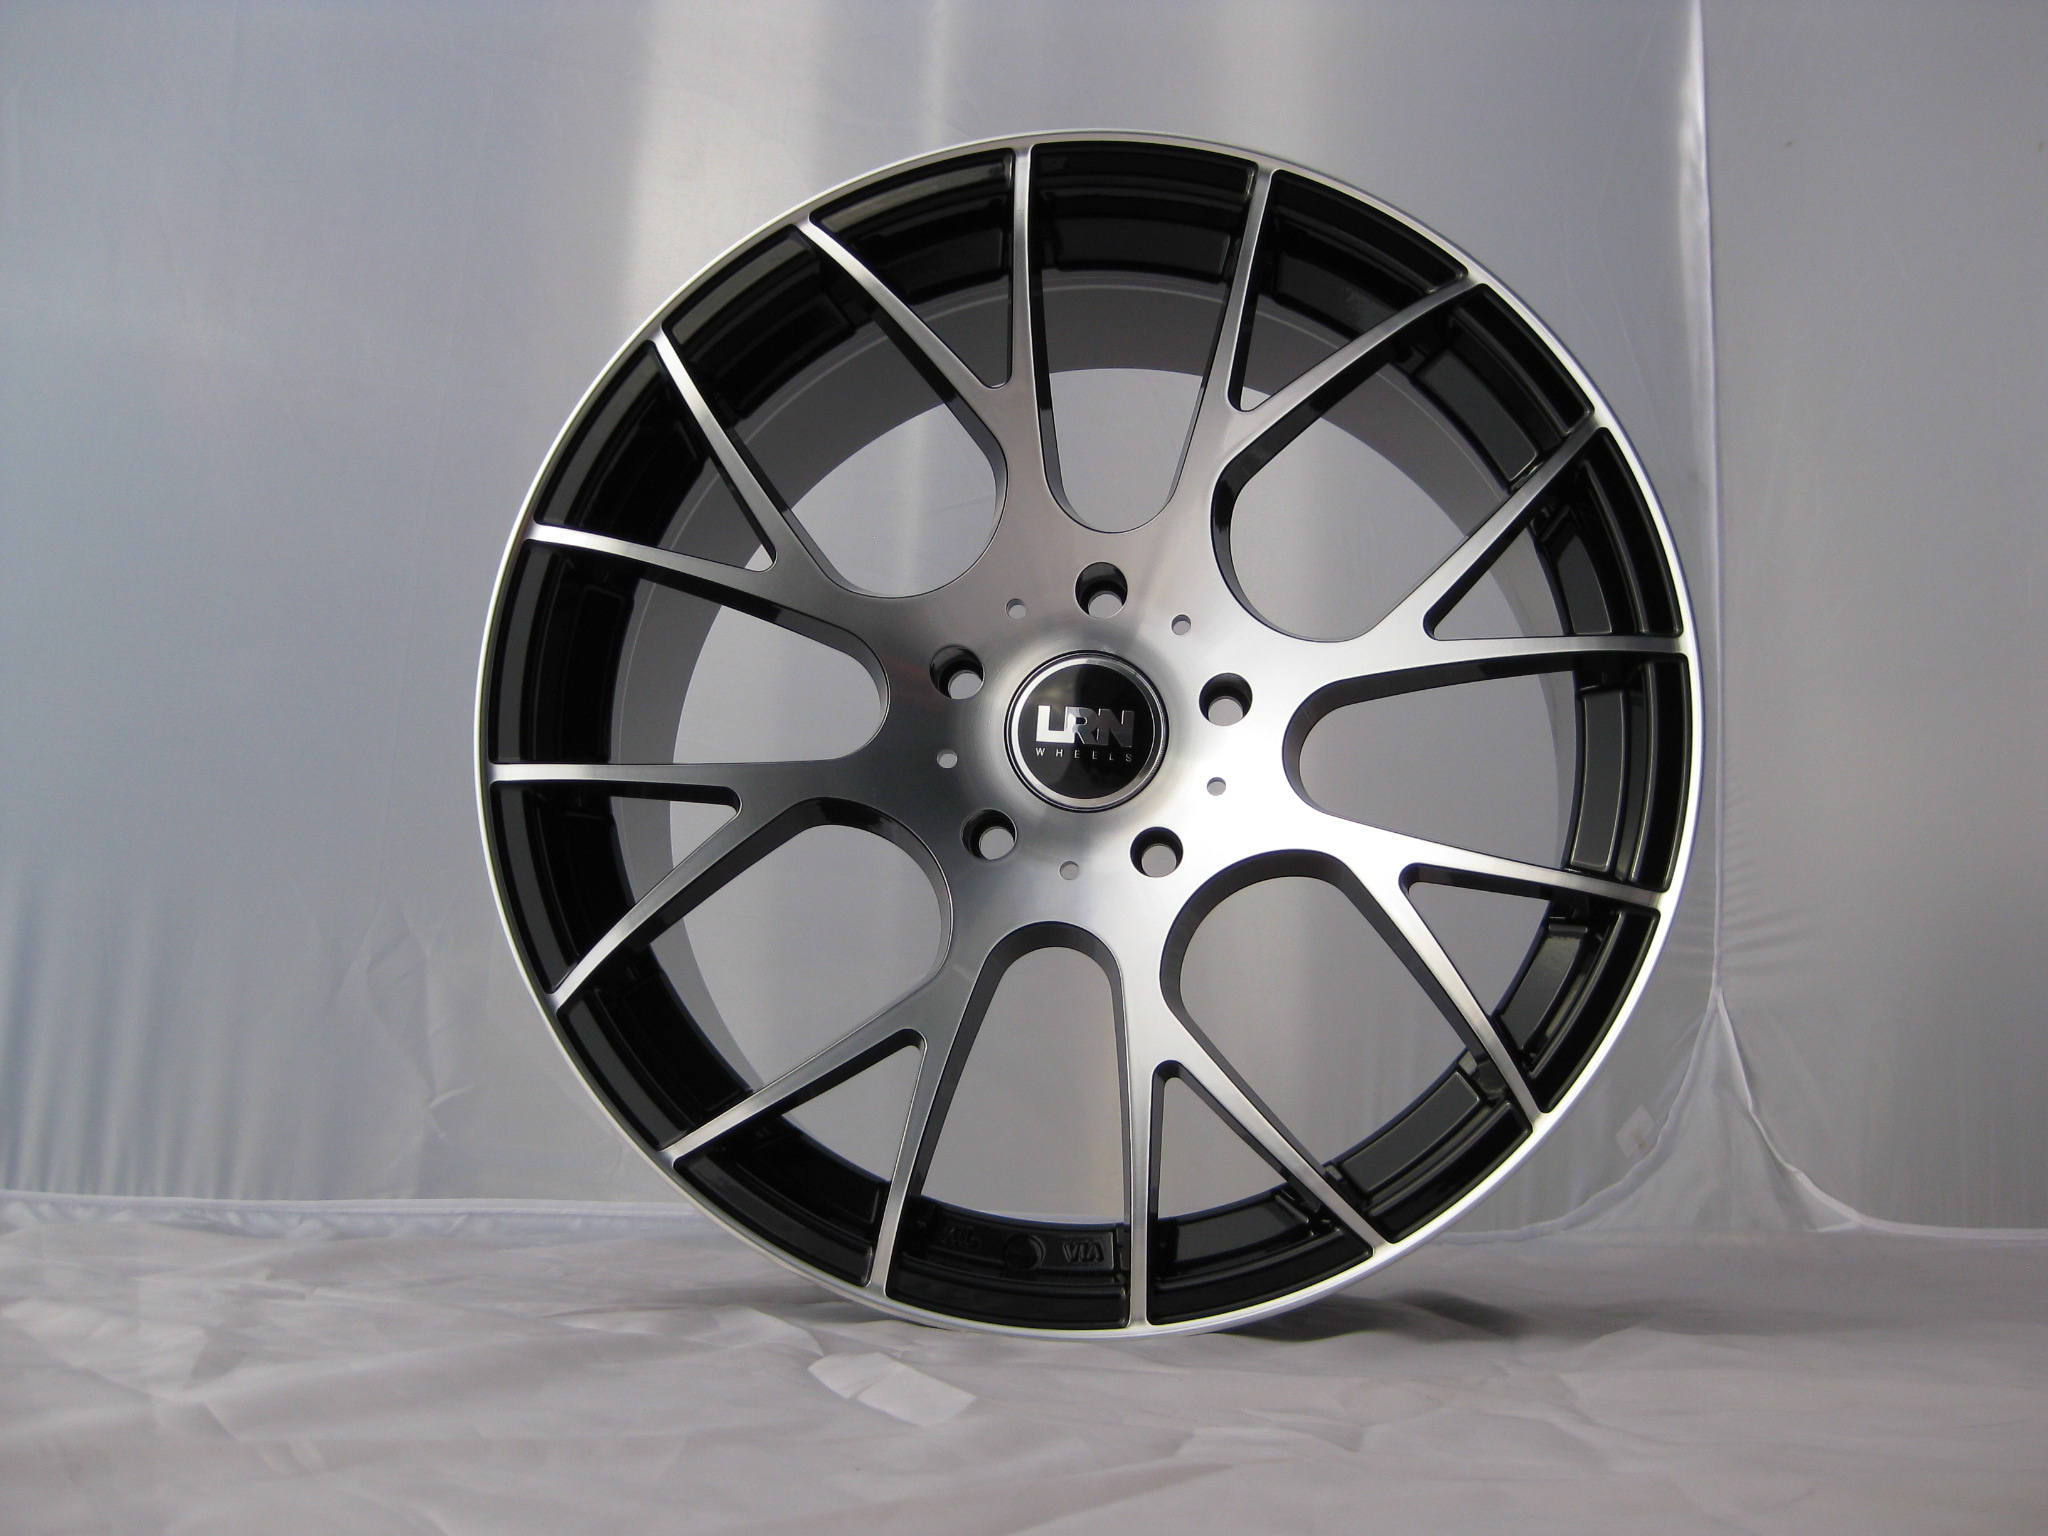 "NEW 18"" LRN CYCLONE ALLOYS IN BLACK/POLISHED, DEEP 9"" CONCAVE REAR, MUST BE SEEN!!"